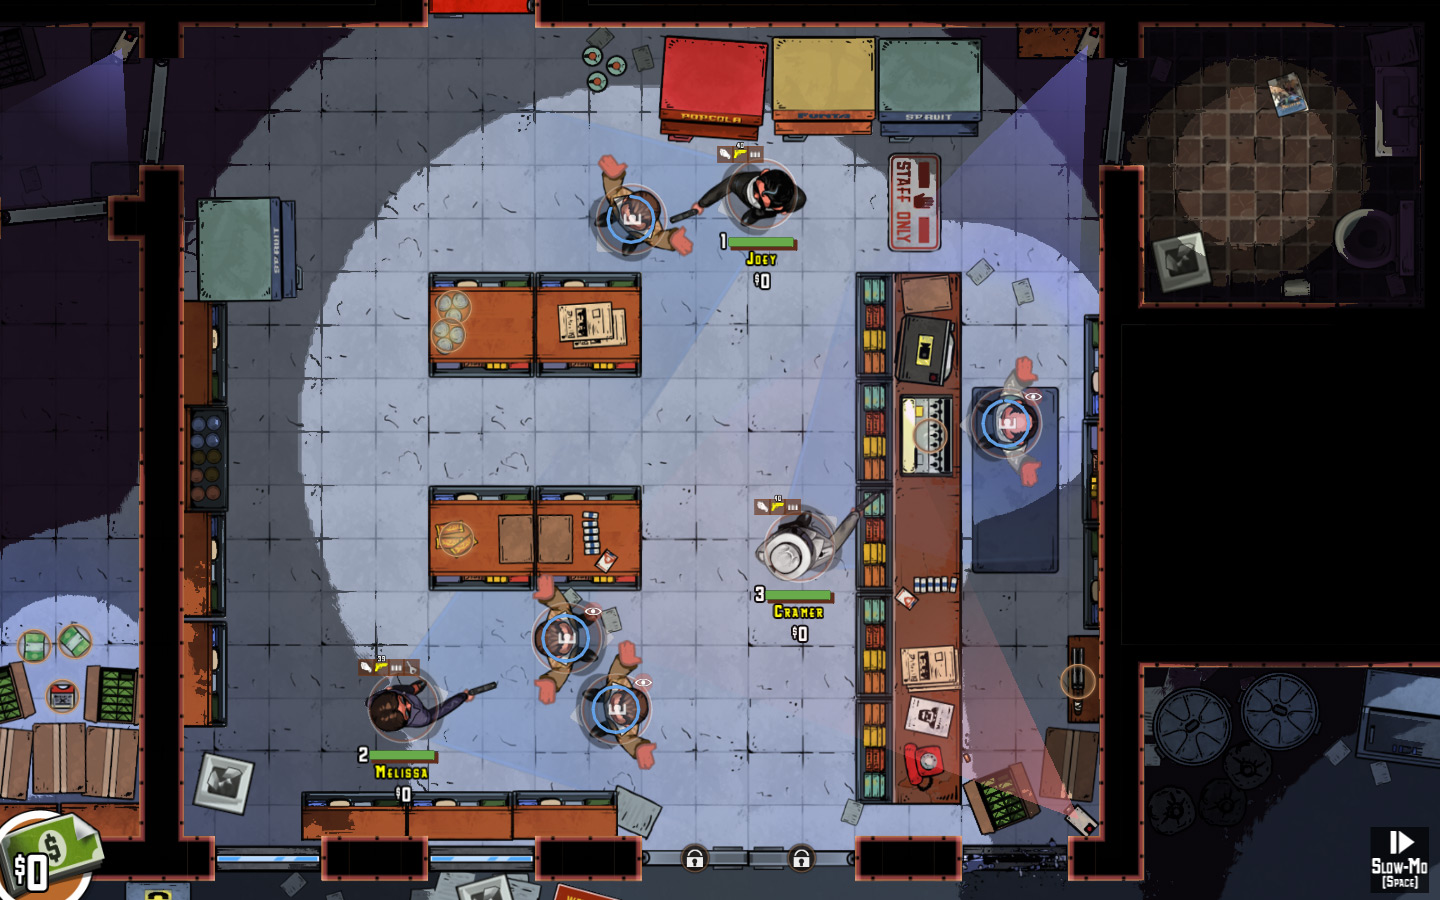 'The Masterplan', A Video Game That Tasks Players With Putting Together a Crew and Pulling Off the Perfect Heist